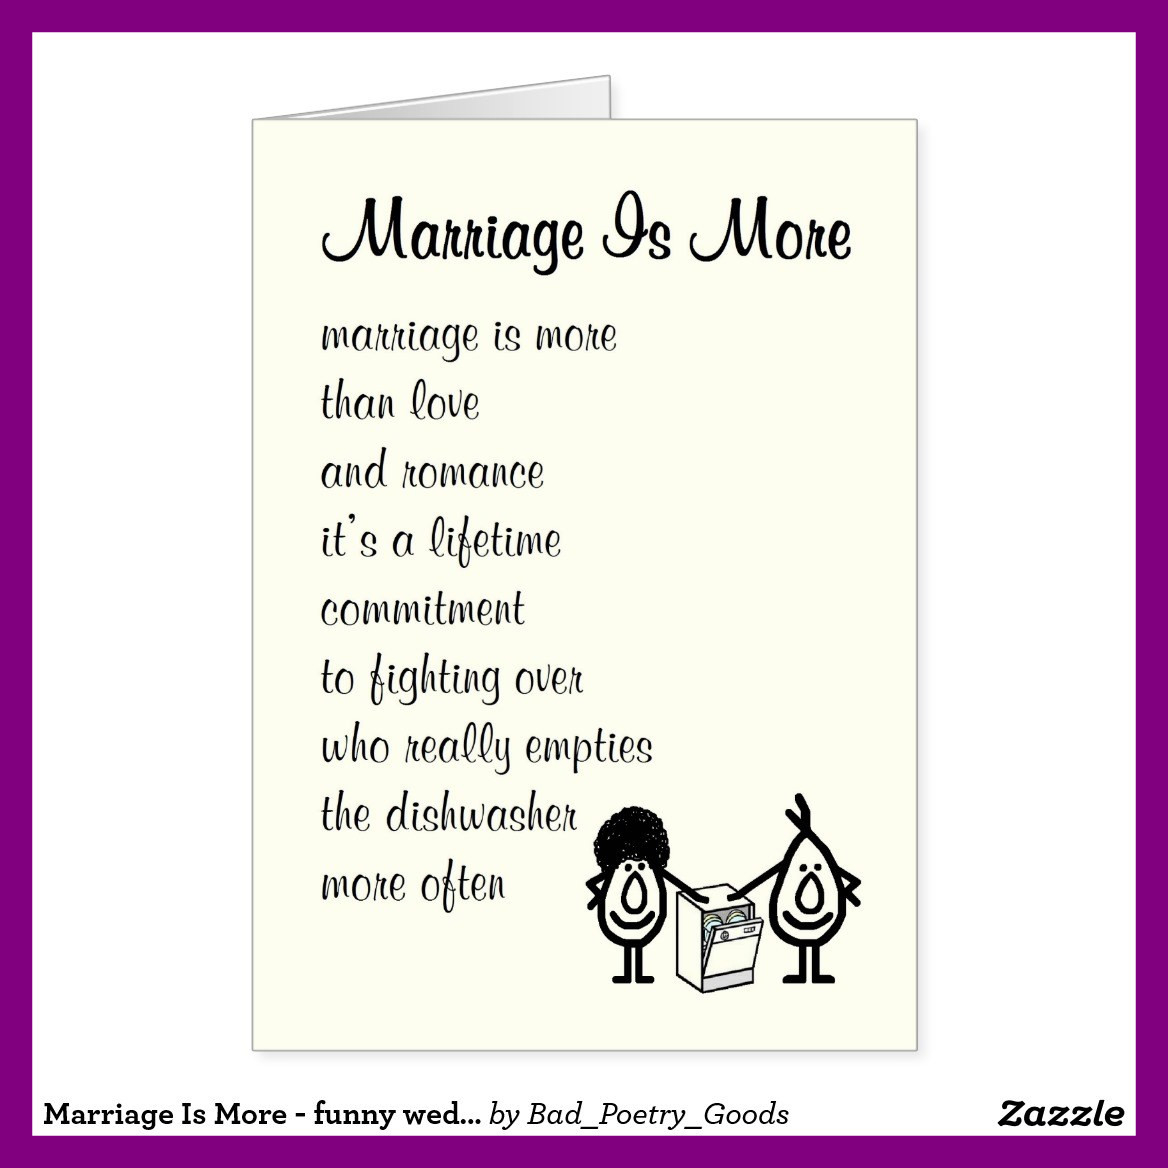 Quotes For Wedding Invitations Fascinating Poems For Wedding Invitation Cards Quotes And I On Love